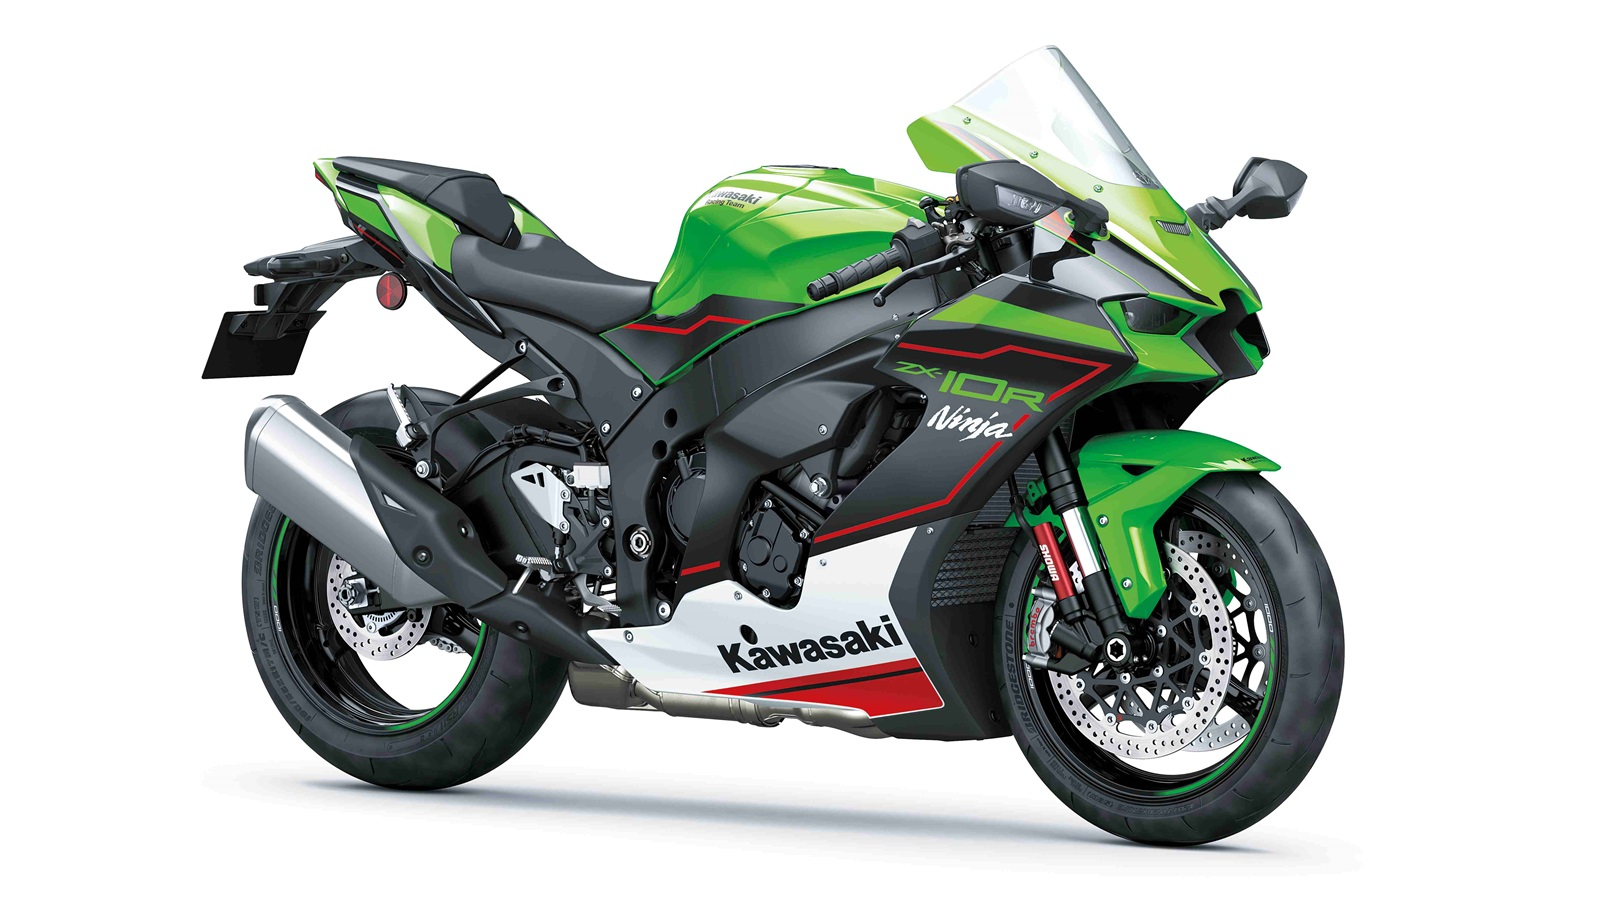 BS-6 2021 Ninja ZX-10R launched at 14.99 lakh LIME-GREEN colour option